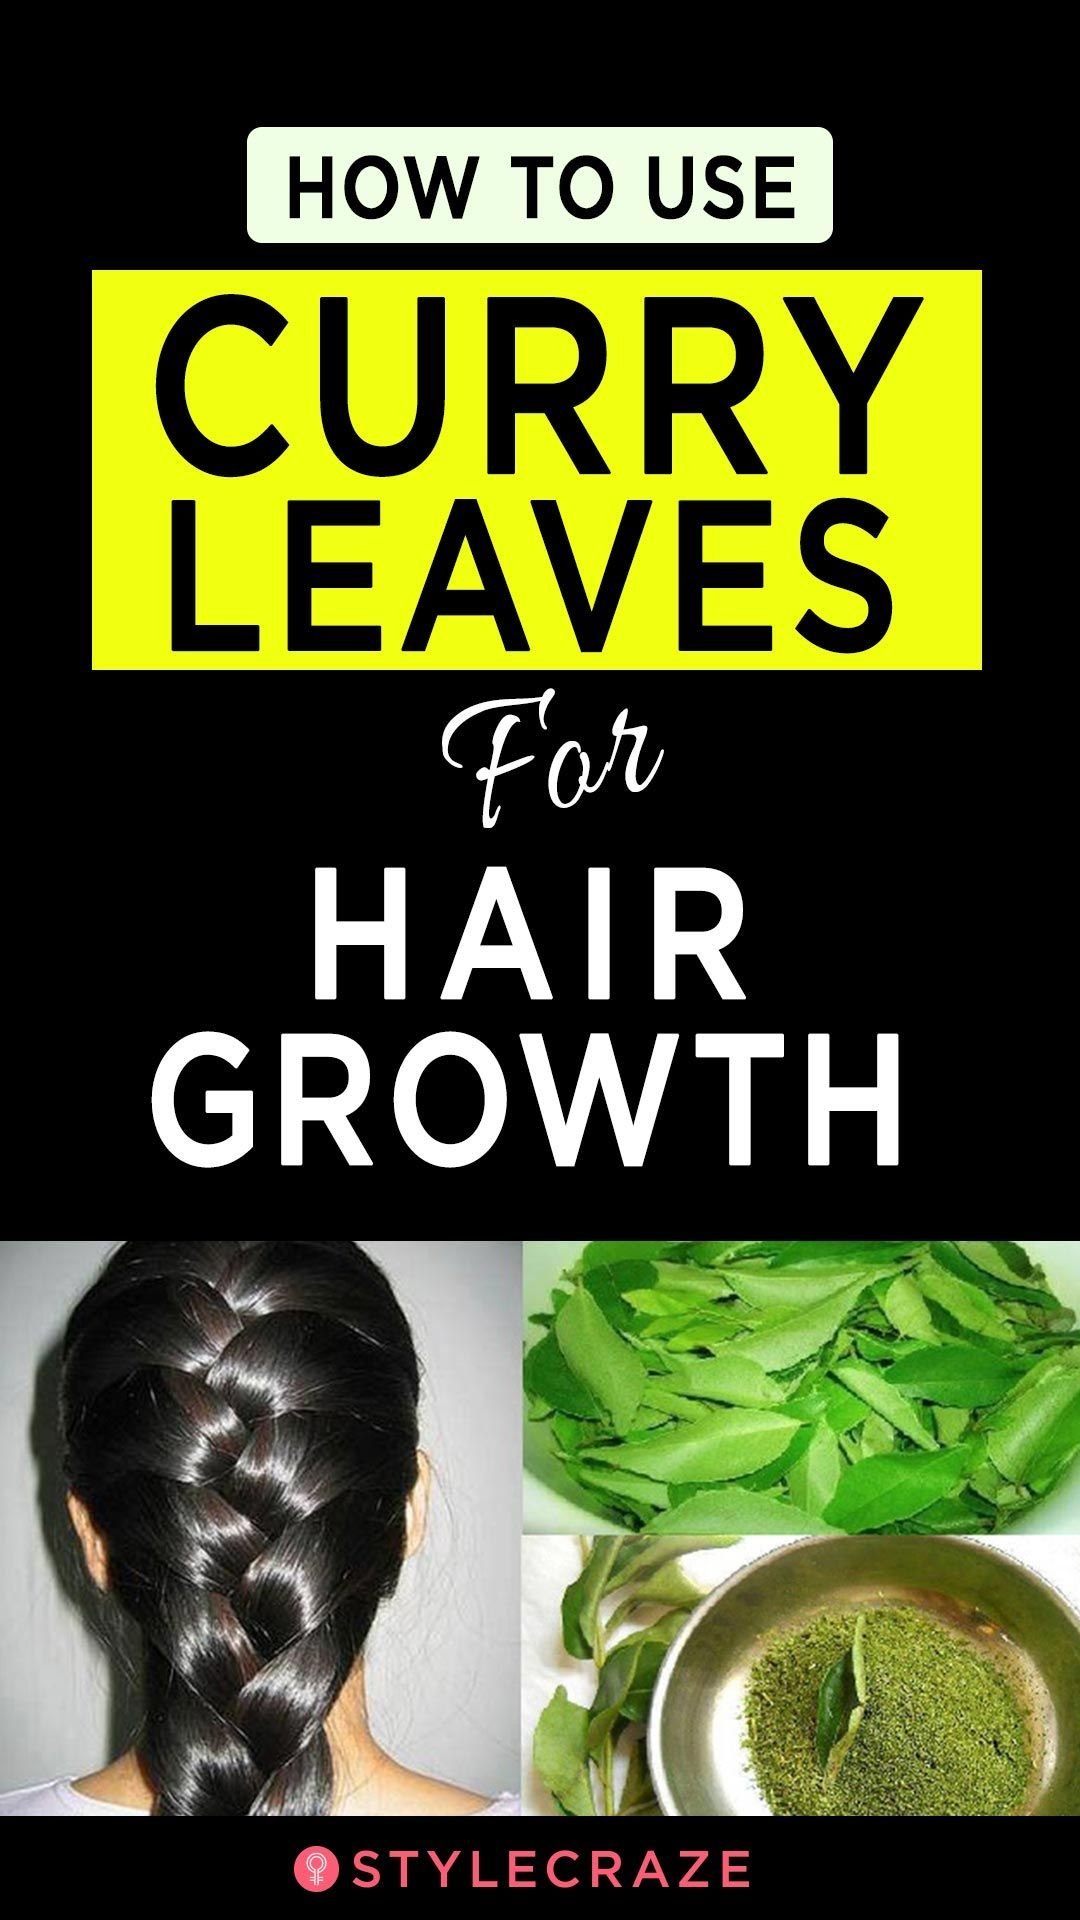 How To Use Curry Leaves For Hair Growth Healthy hair